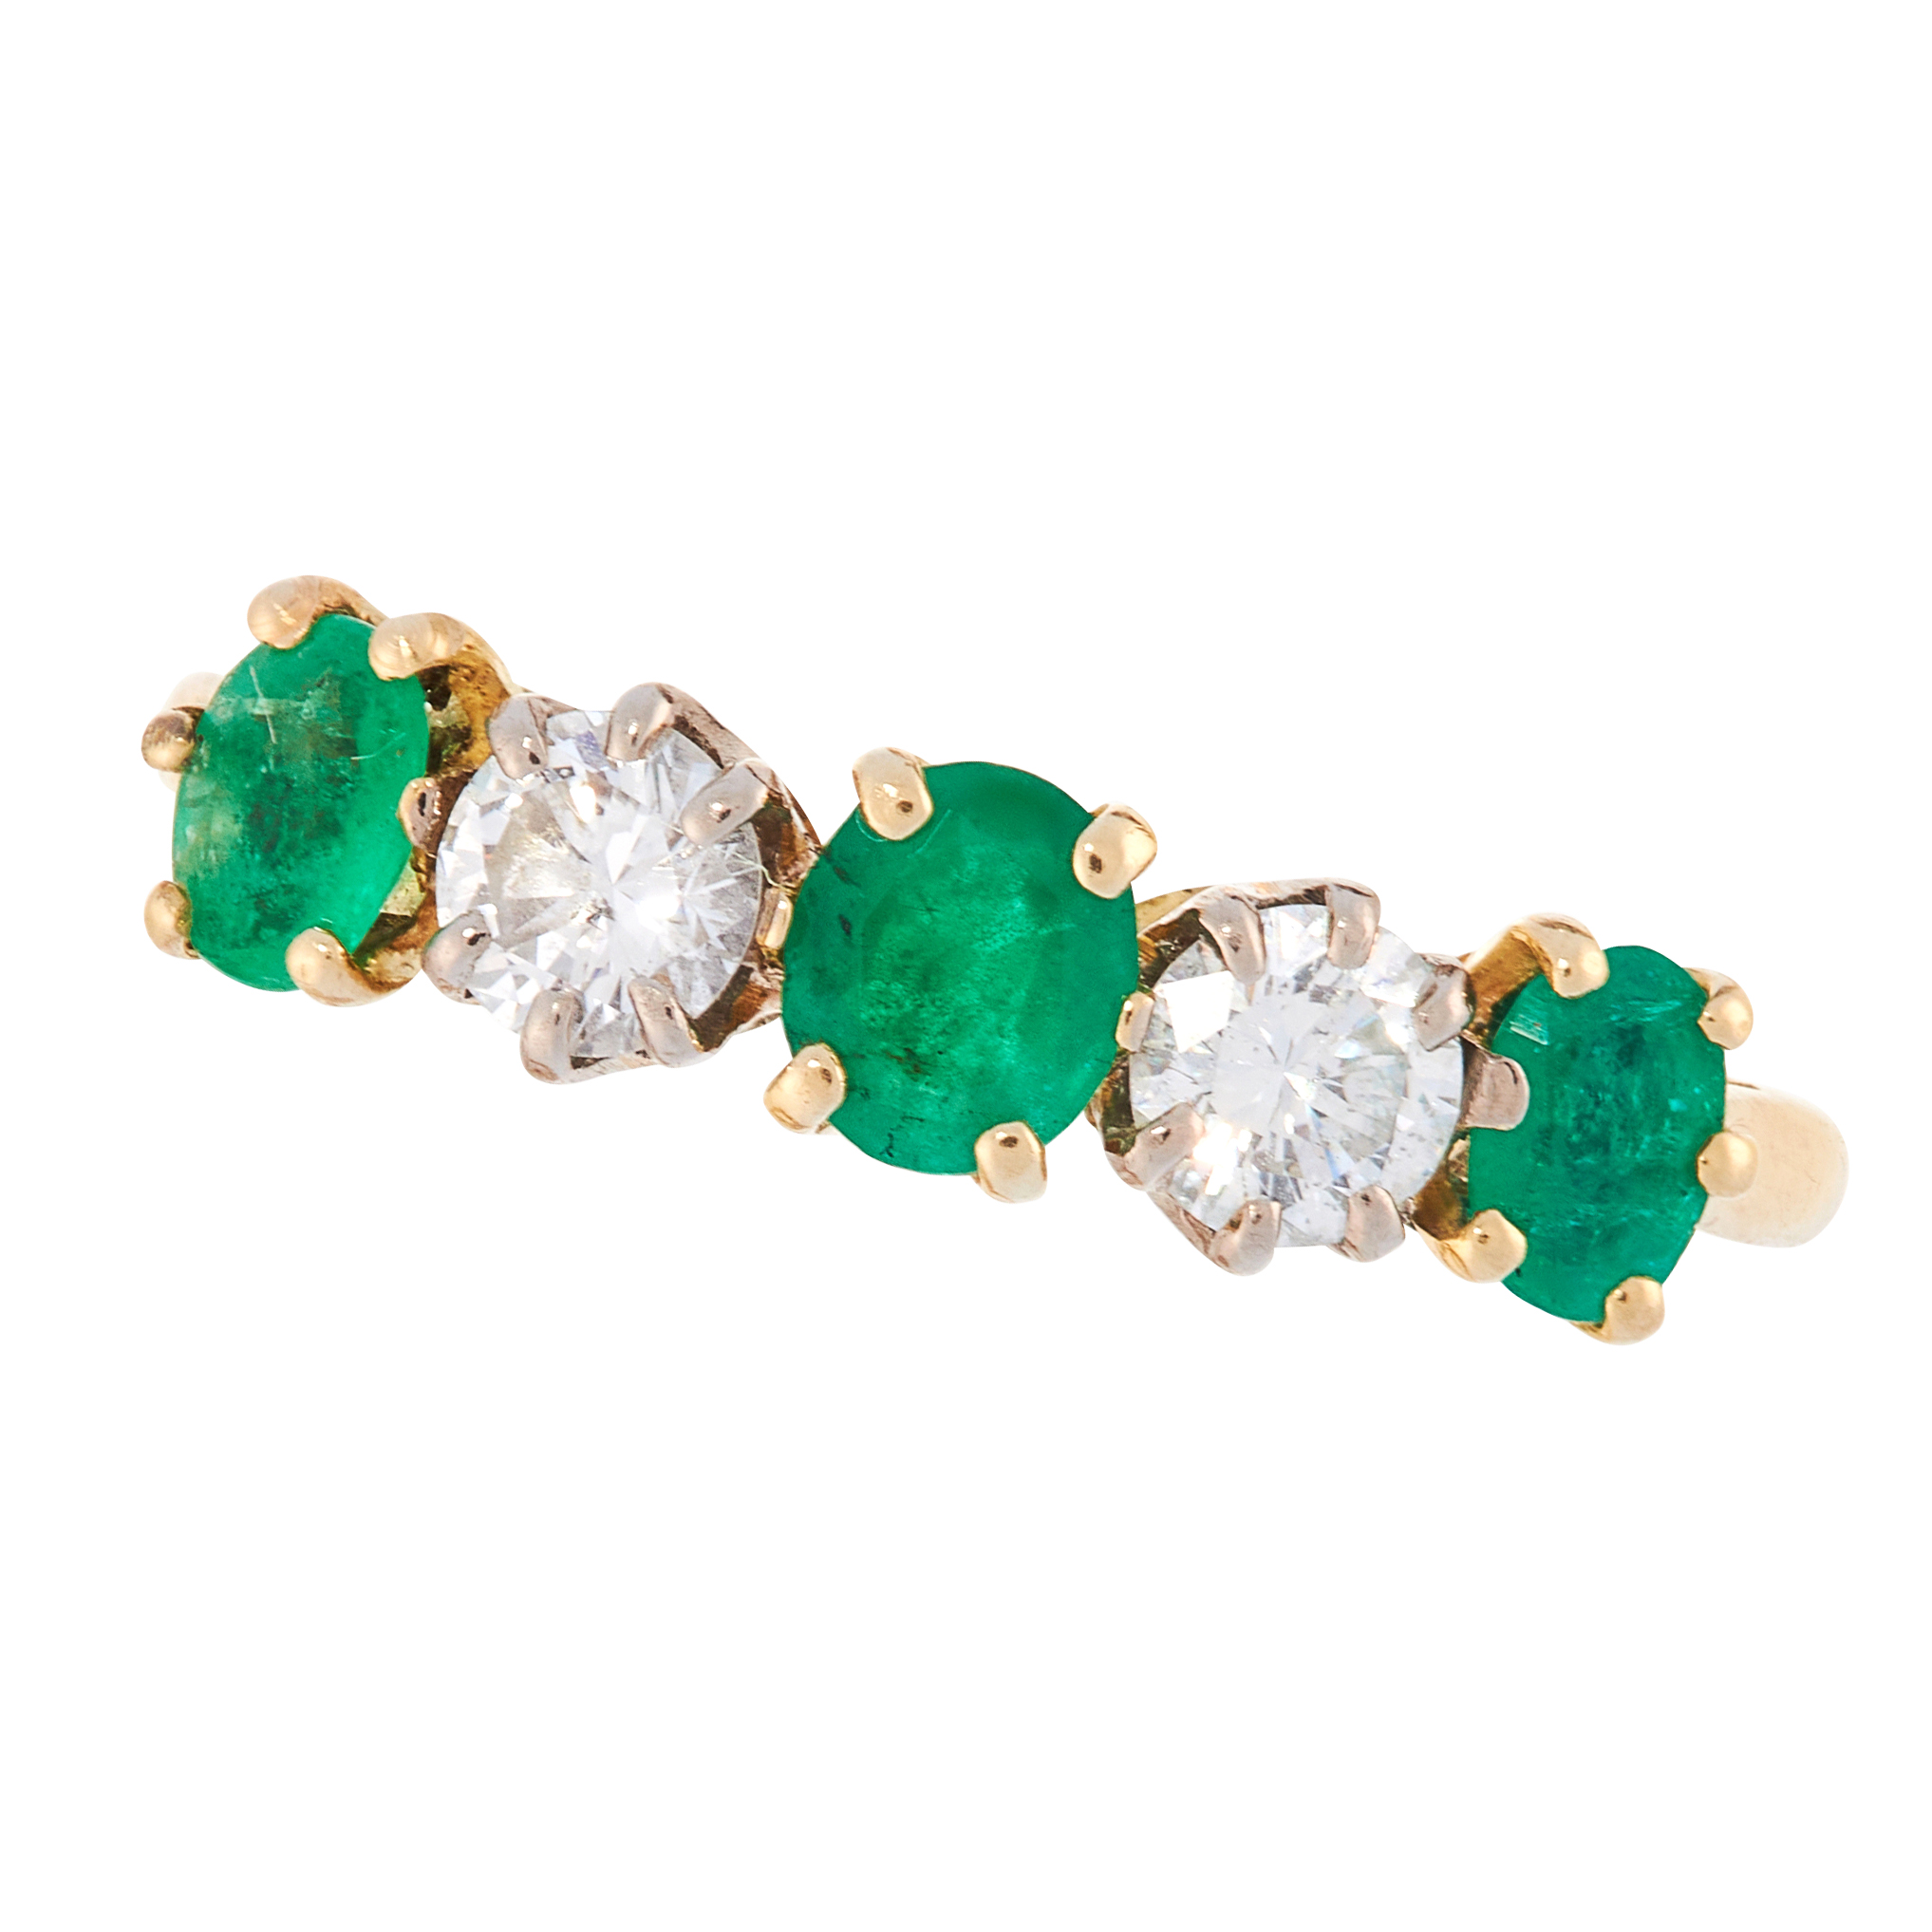 AN EMERALD AND DIAMOND DRESS RING in 18ct yellow gold, set with a trio of graduated oval cut